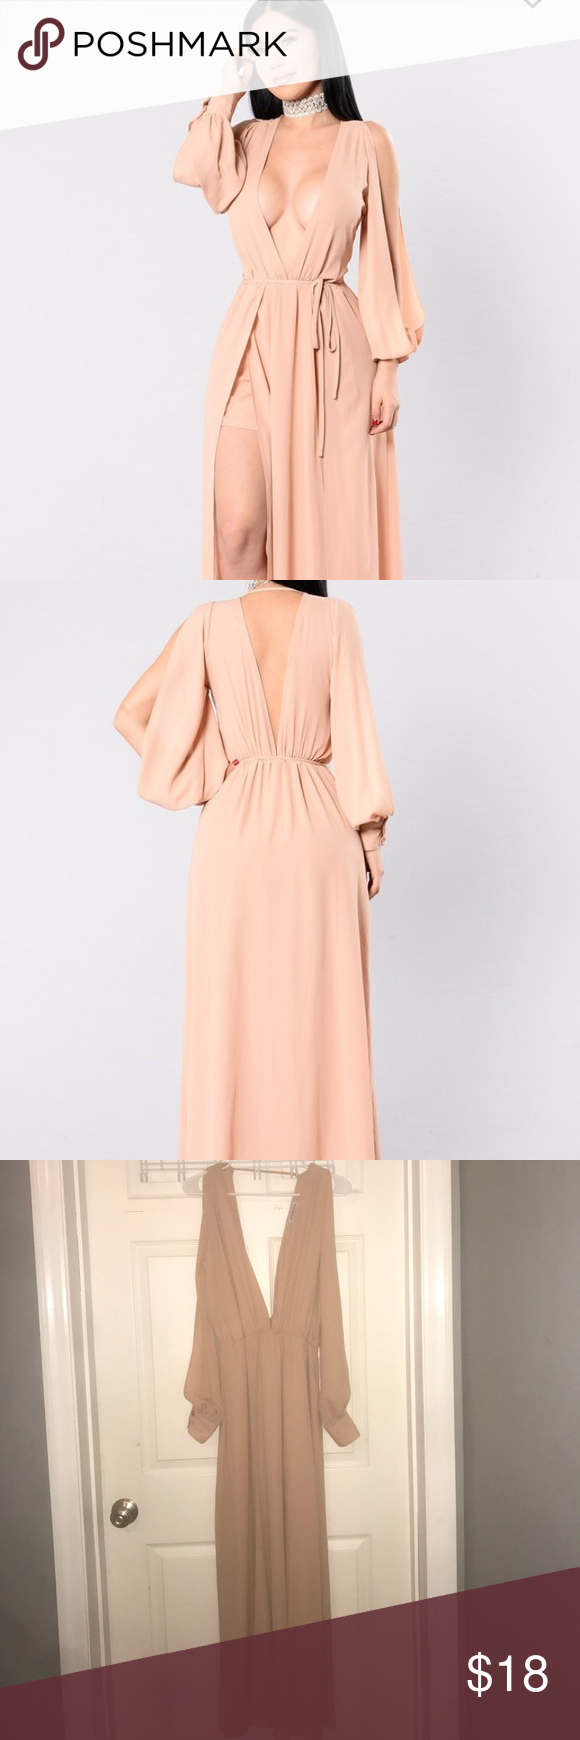 ccb128abf7c  BRAND NEW  Fashion Nova Maxi Dress w Belt Size M Fashion Nova Maxi Nude  Dress. Brand New with Tags and Belt. Size  Medium. Never worn. No rips or  stains.